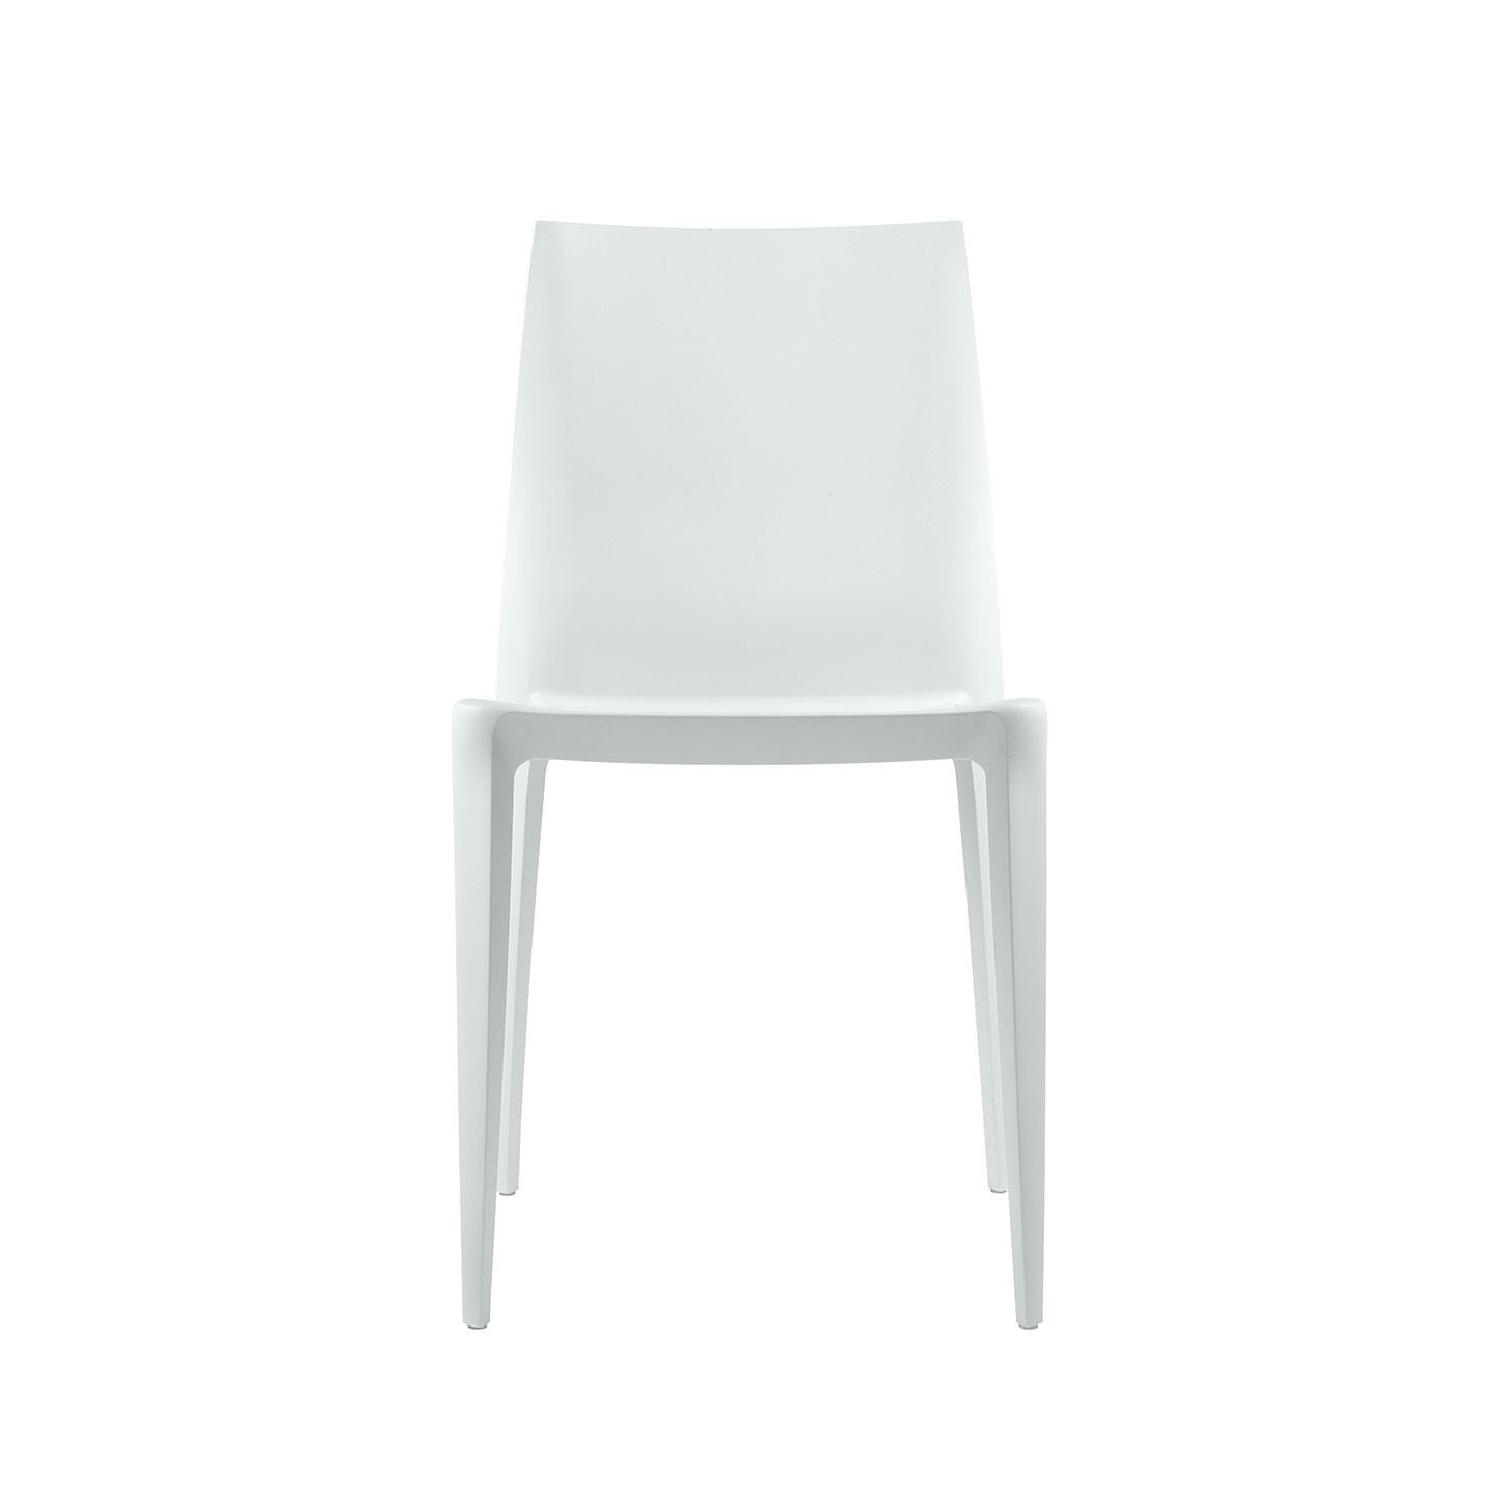 Heller Inc Mario Bellini Chair in Light Gray